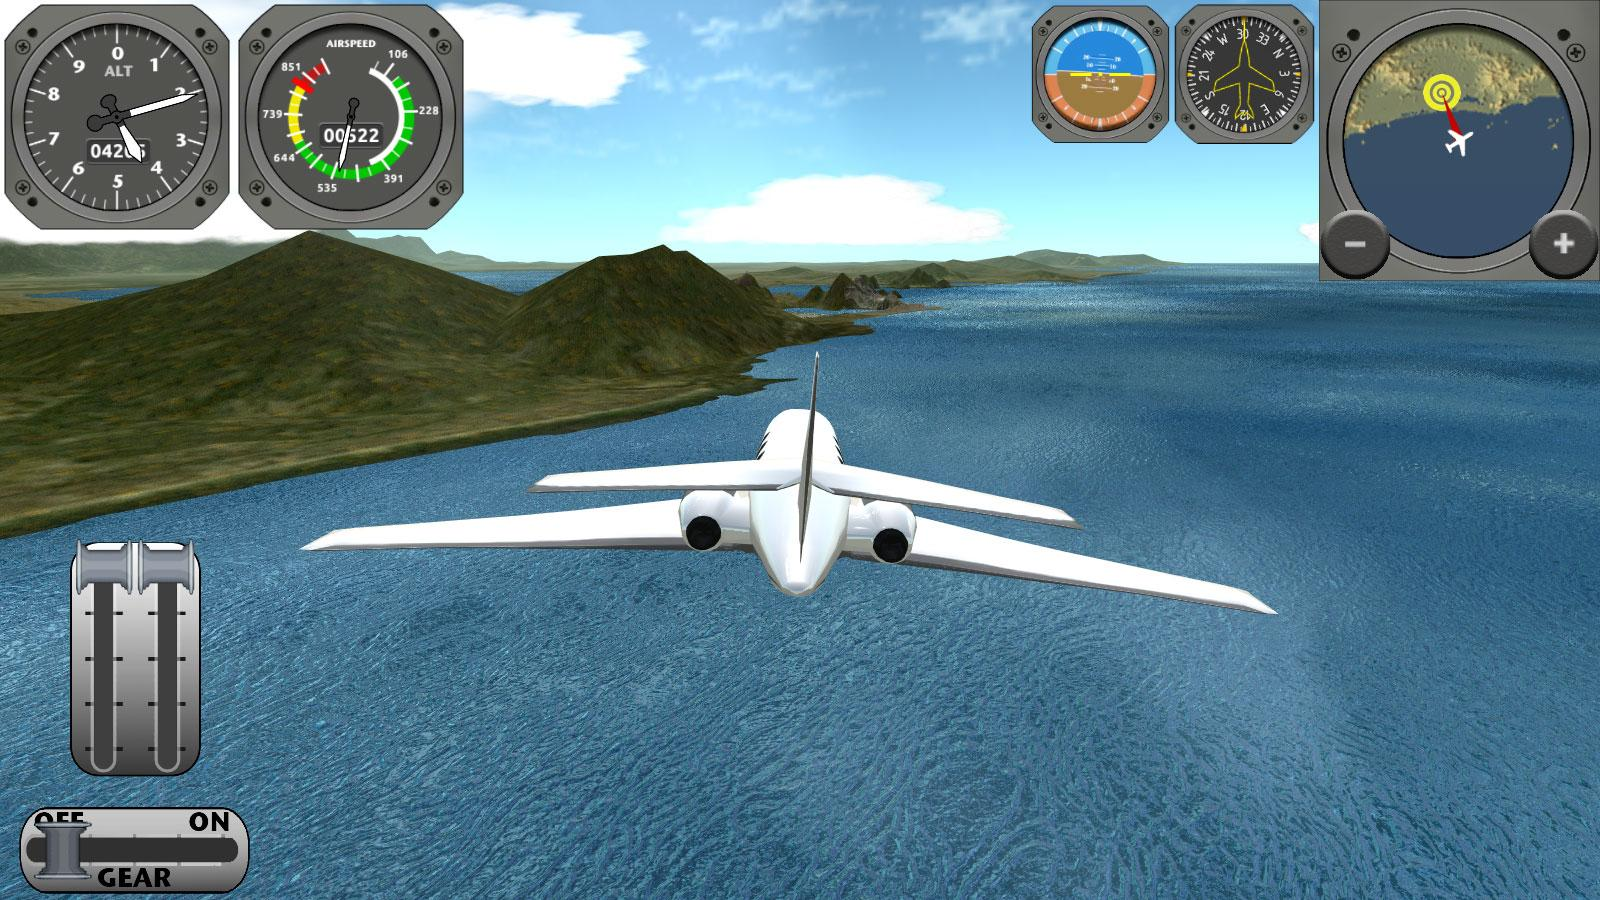 FLIGHT SIMULATOR Xtreme HD - Applications Android sur Google Play